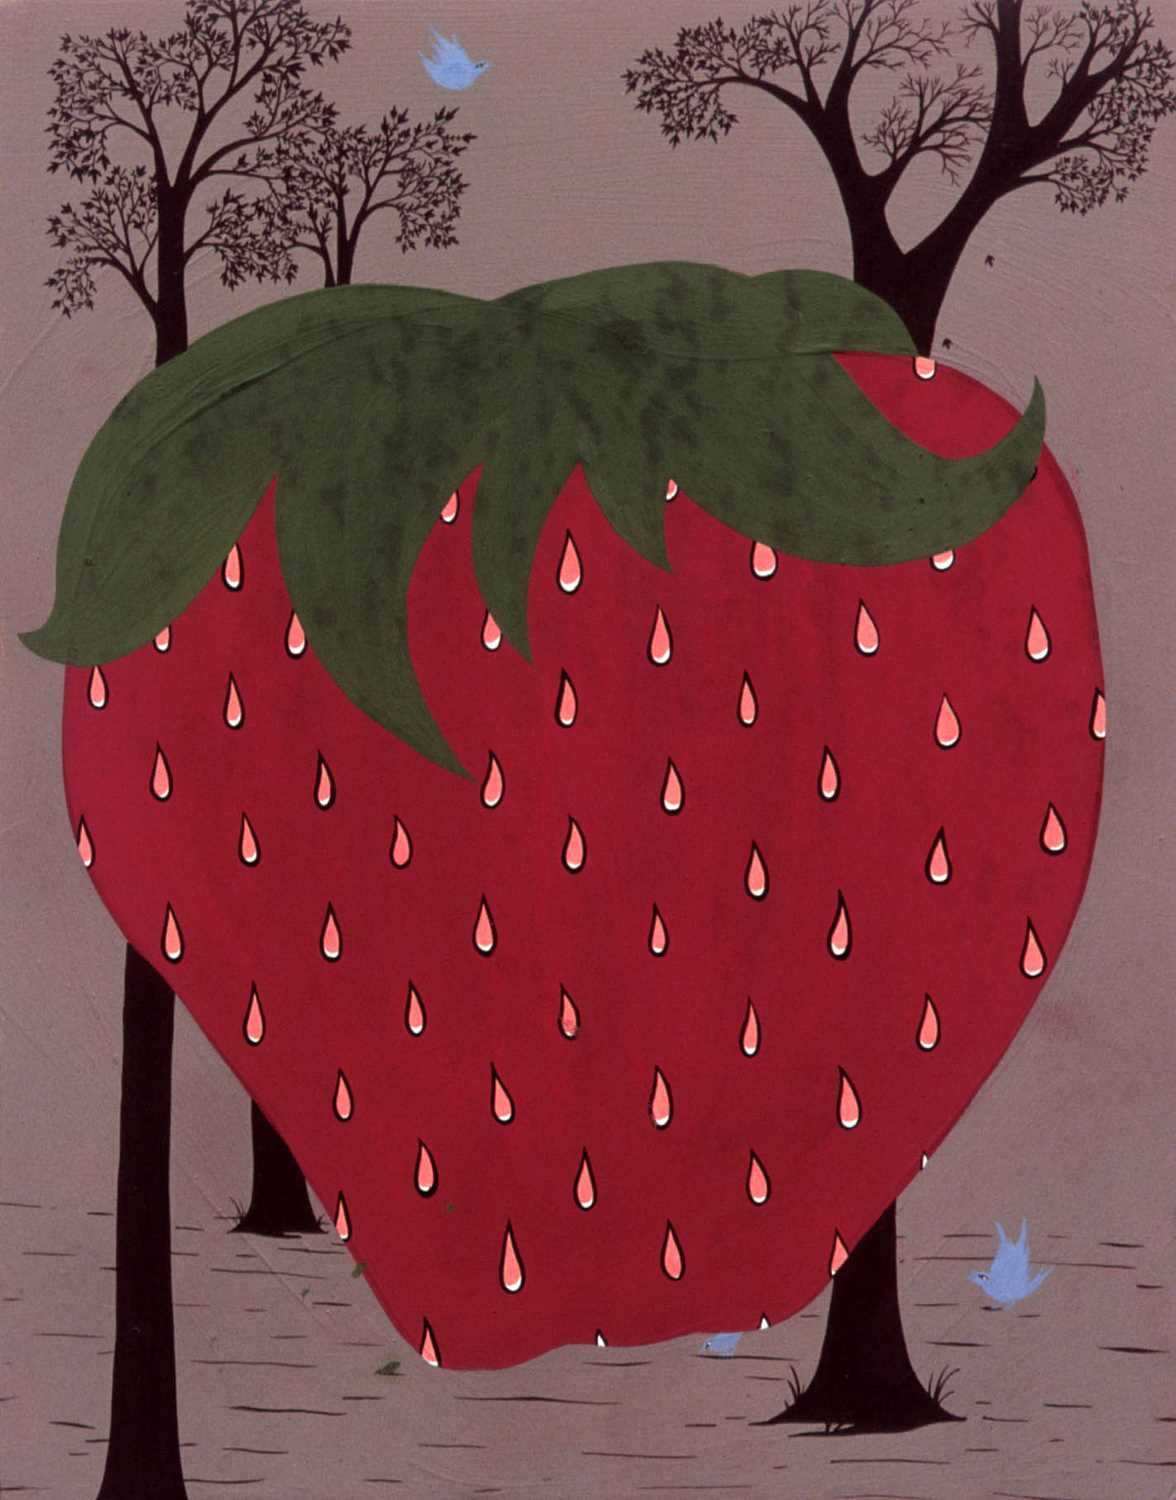 Lot 20-Clare Rojas (American 1976-), 'Strawberry', 2002